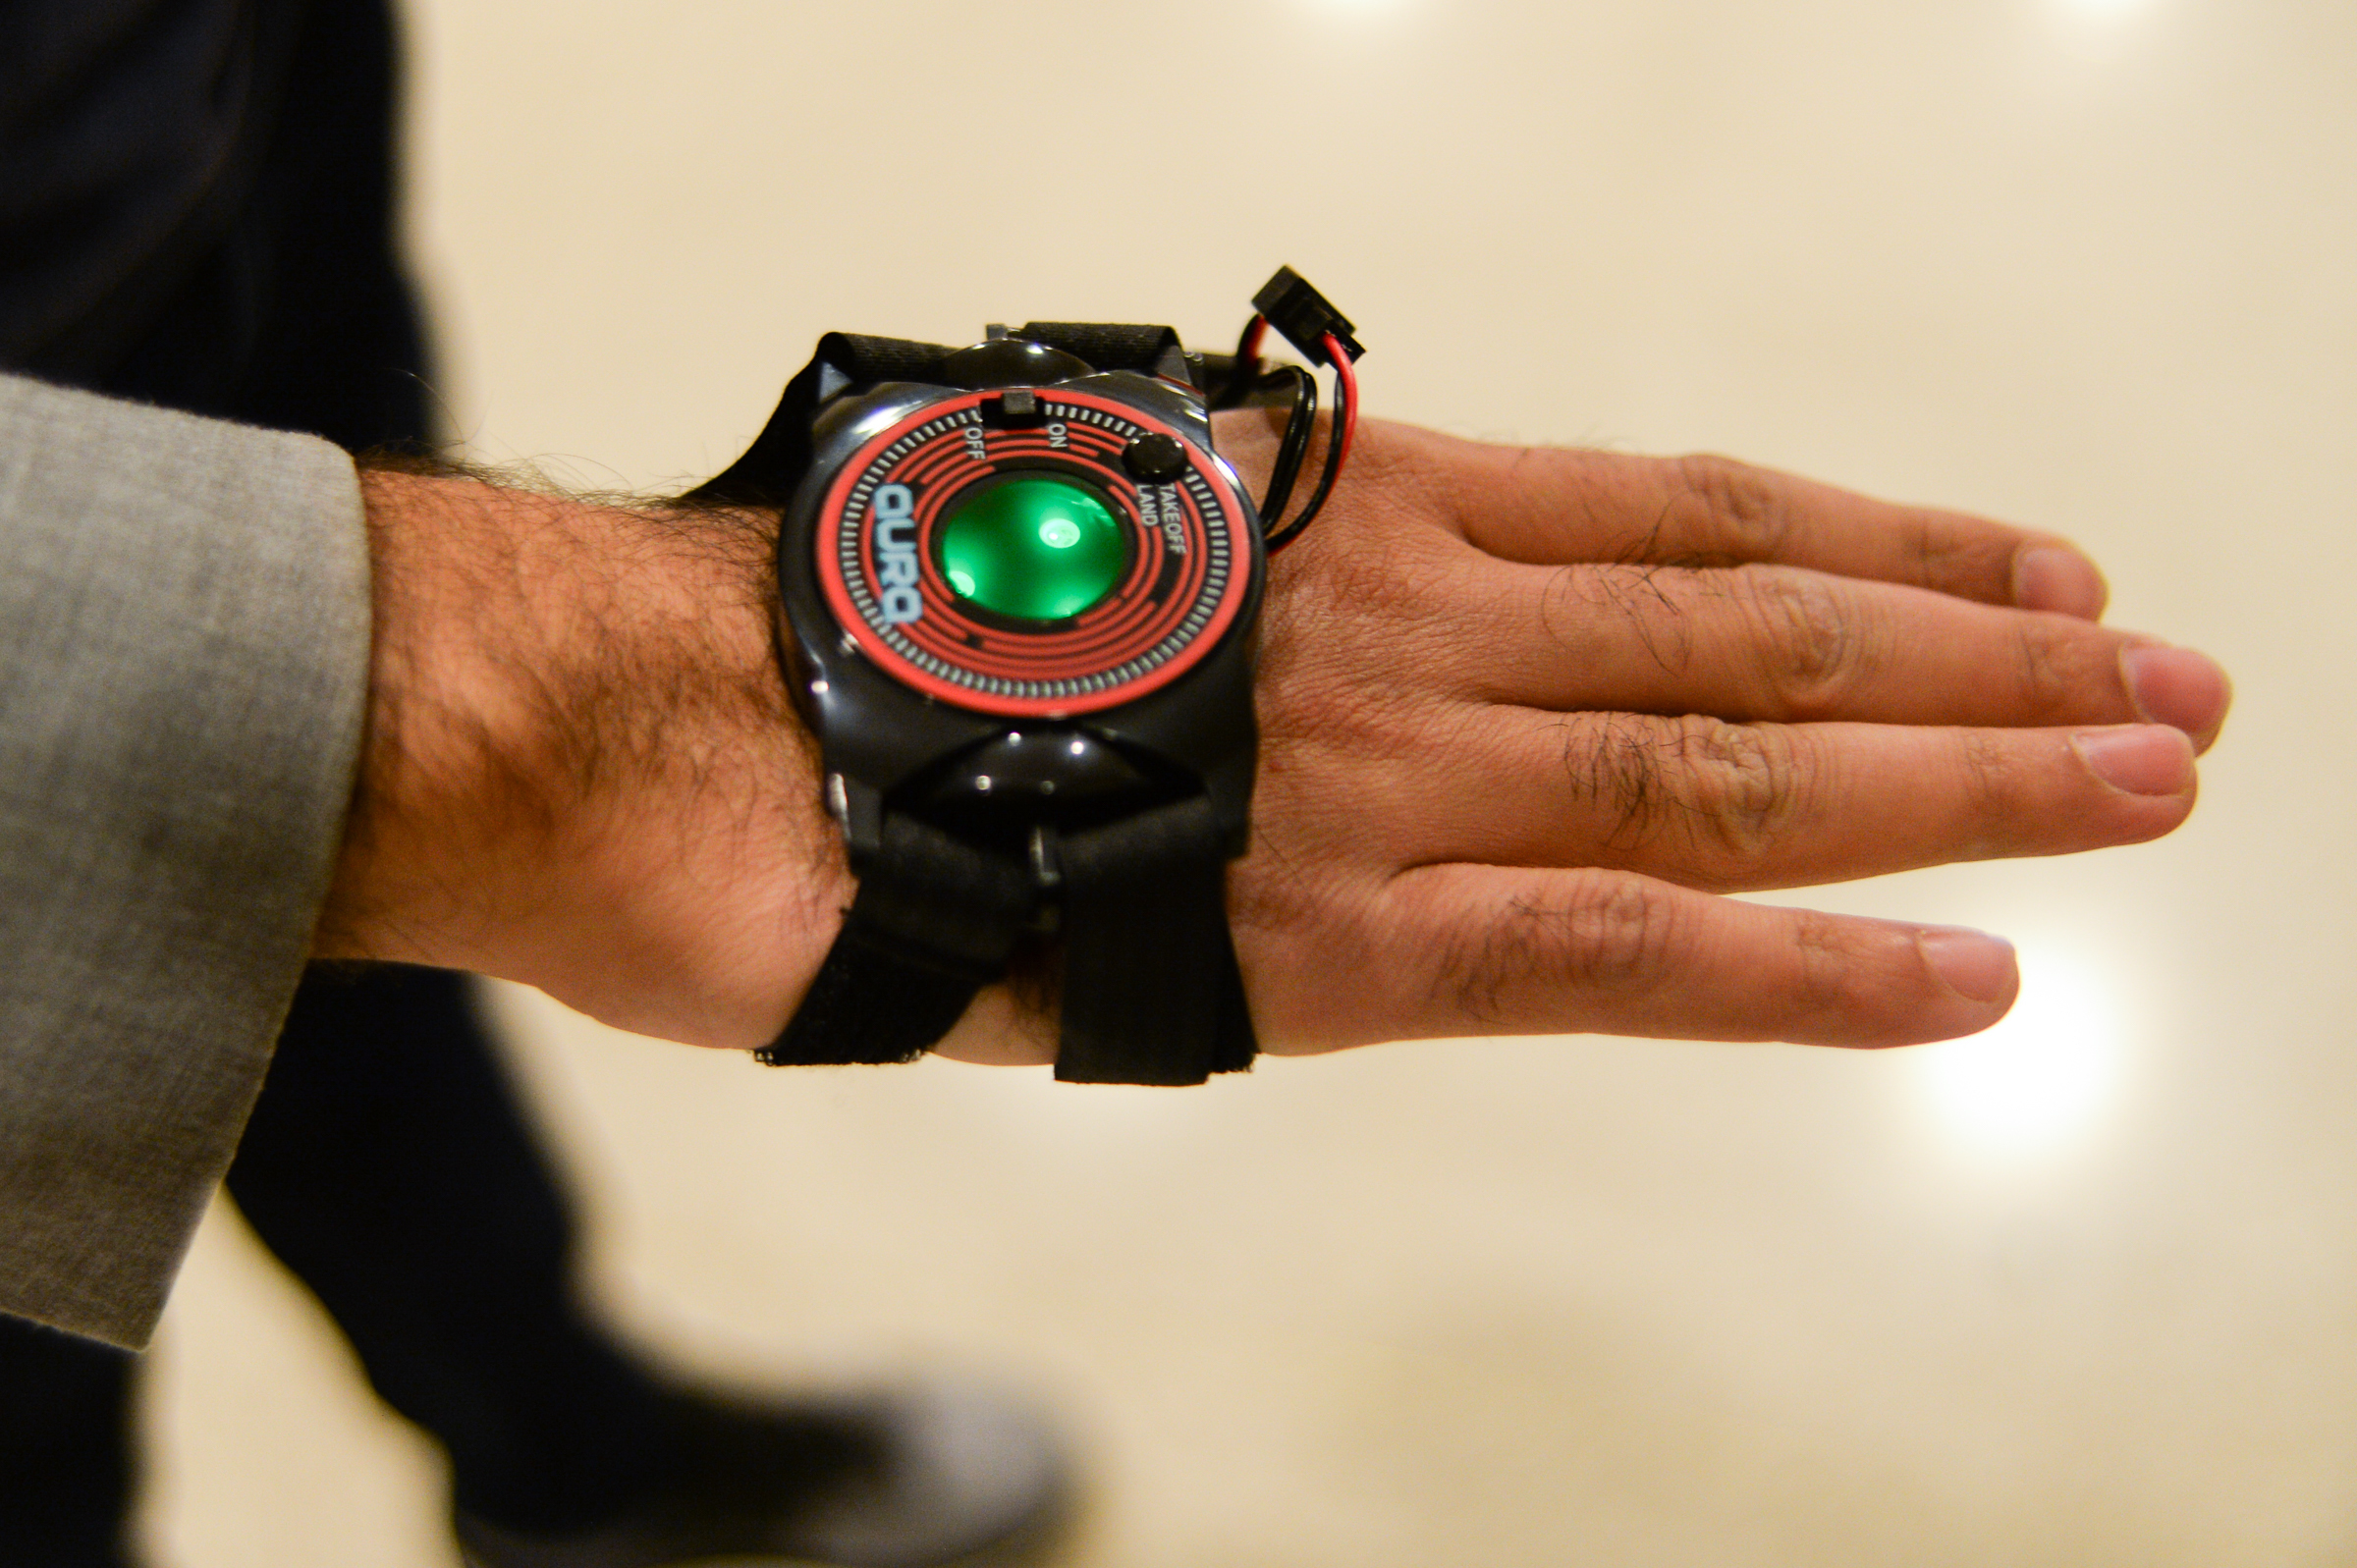 The controller Pramod Abichandani and his team developed detects hand gestures and movement to direct the Aura drone.